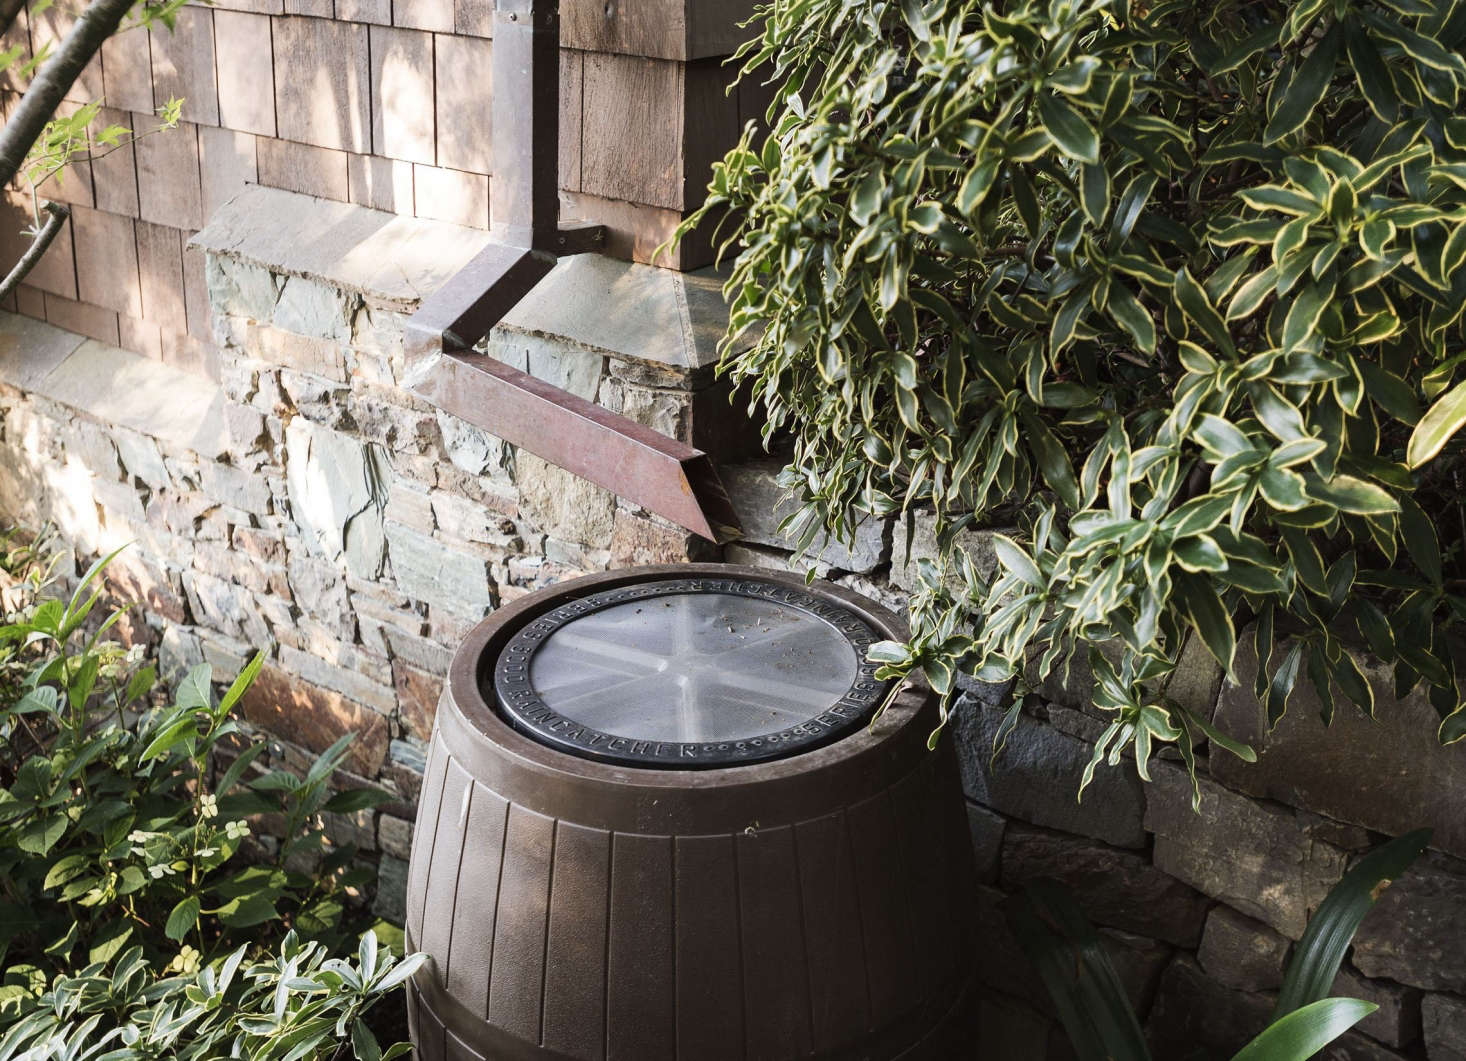 For more, see 10 Easy Pieces: Rain Barrels.